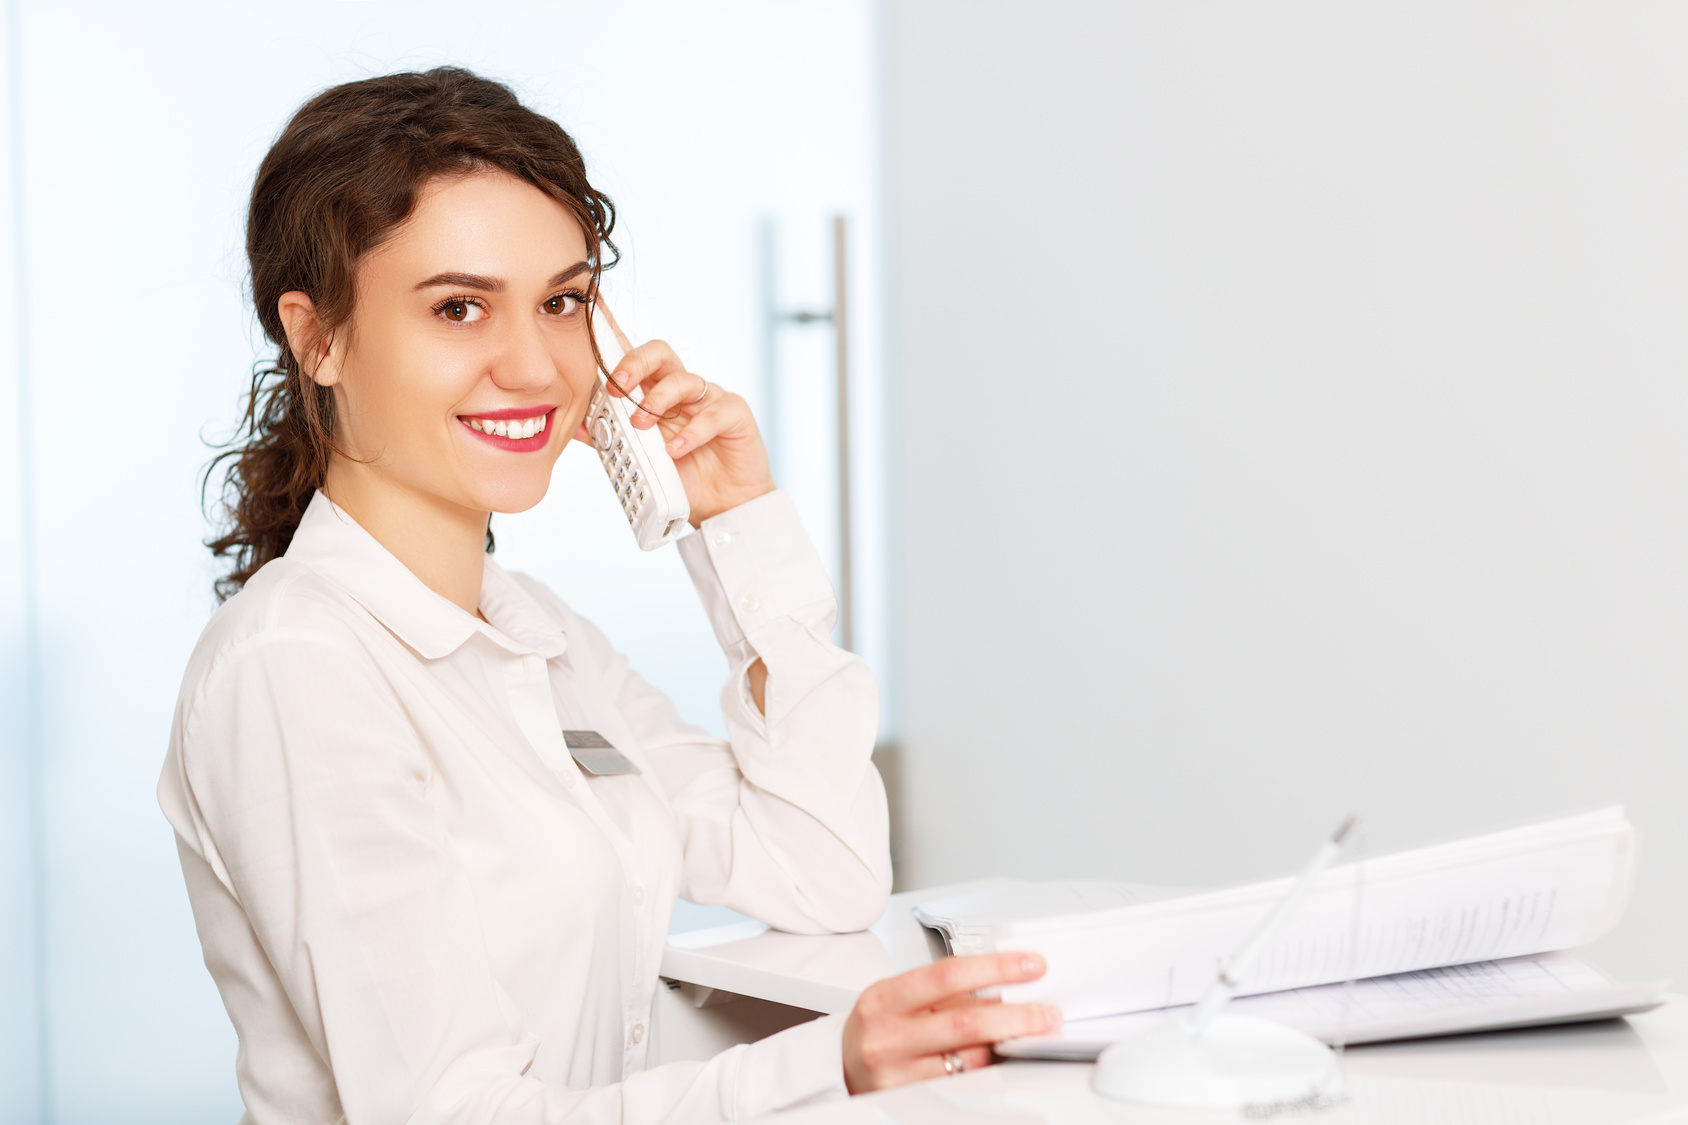 friendly woman behind reception desk administrator